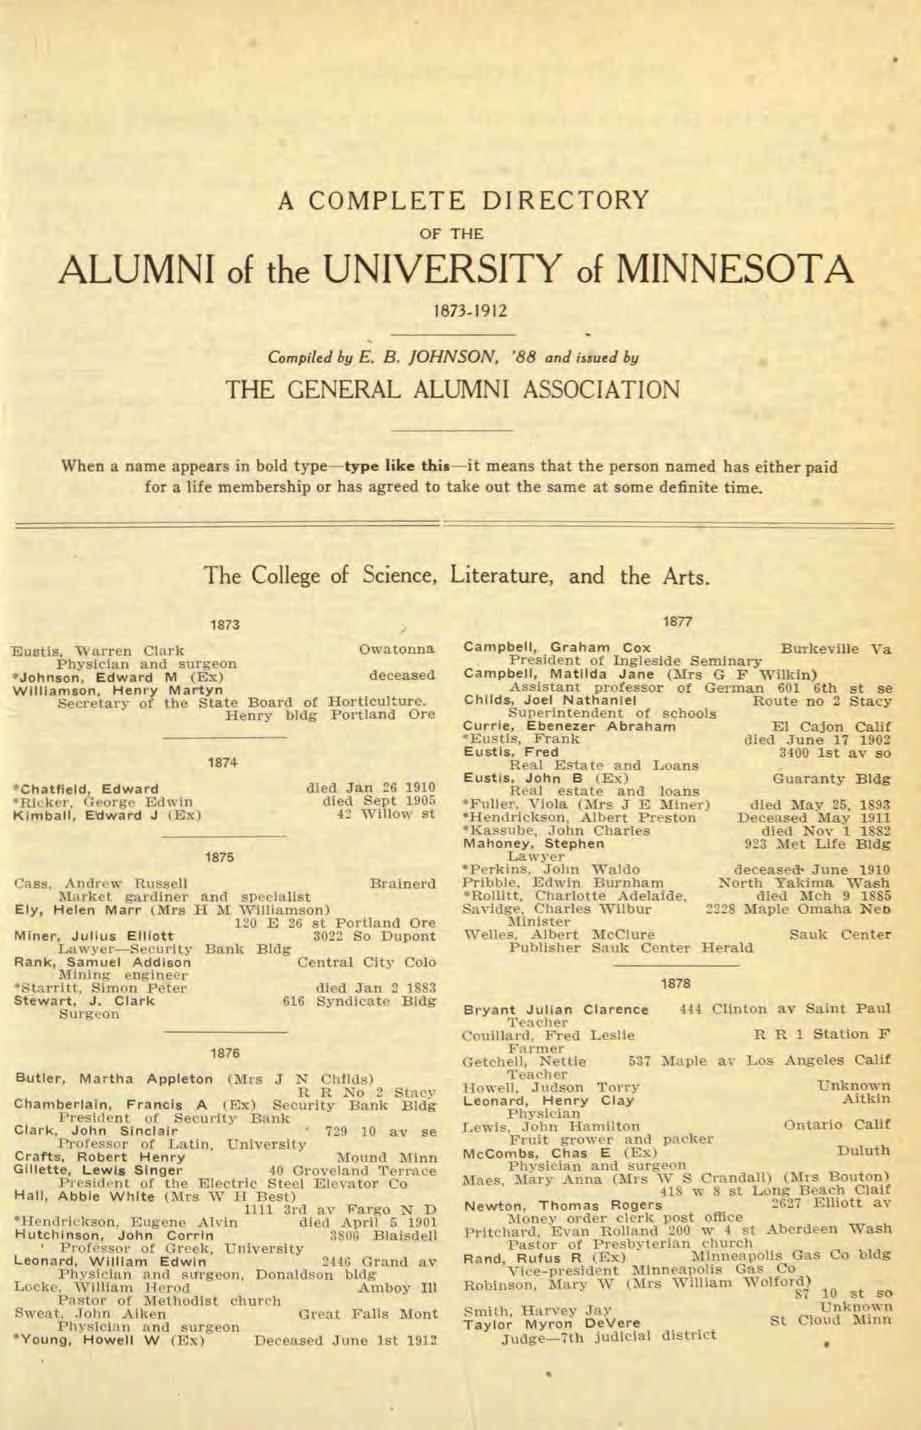 A COMPLETE DIRECTORY OF THE ALUMNI of the UNIVERSITY of MINNESOTA 1873-1912 Compiled by E, B. JOHNSON, '88 and ij.